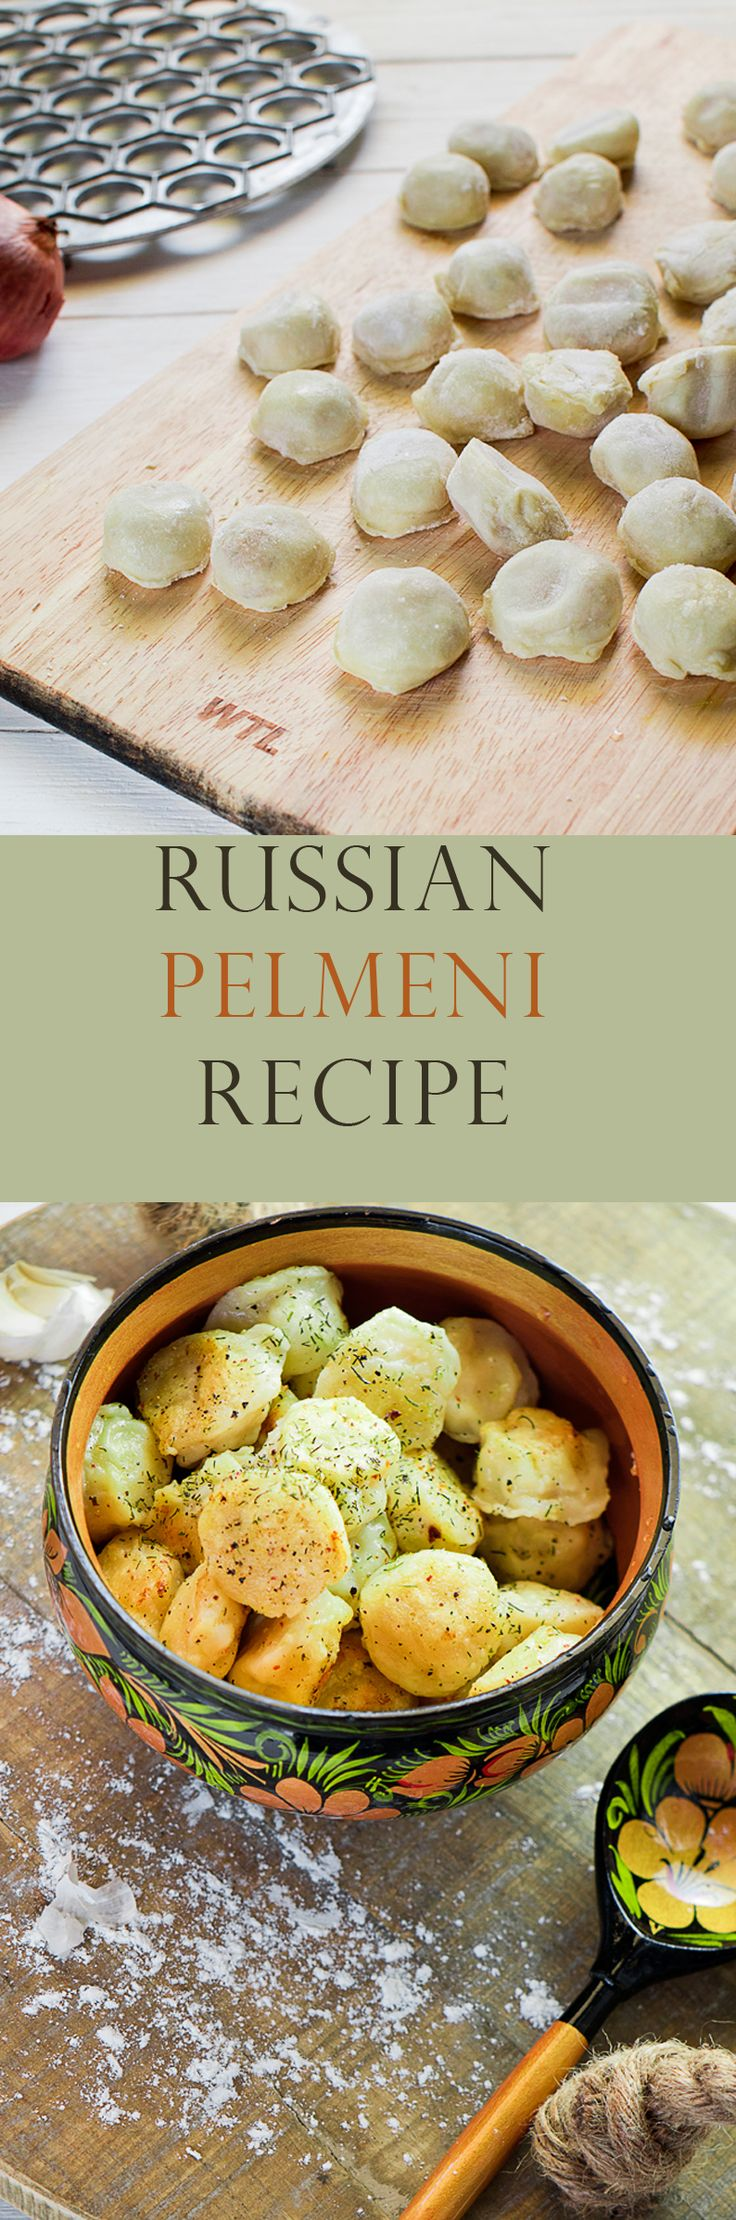 25 best ideas about russian foods on pinterest russian for Authentic russian cuisine